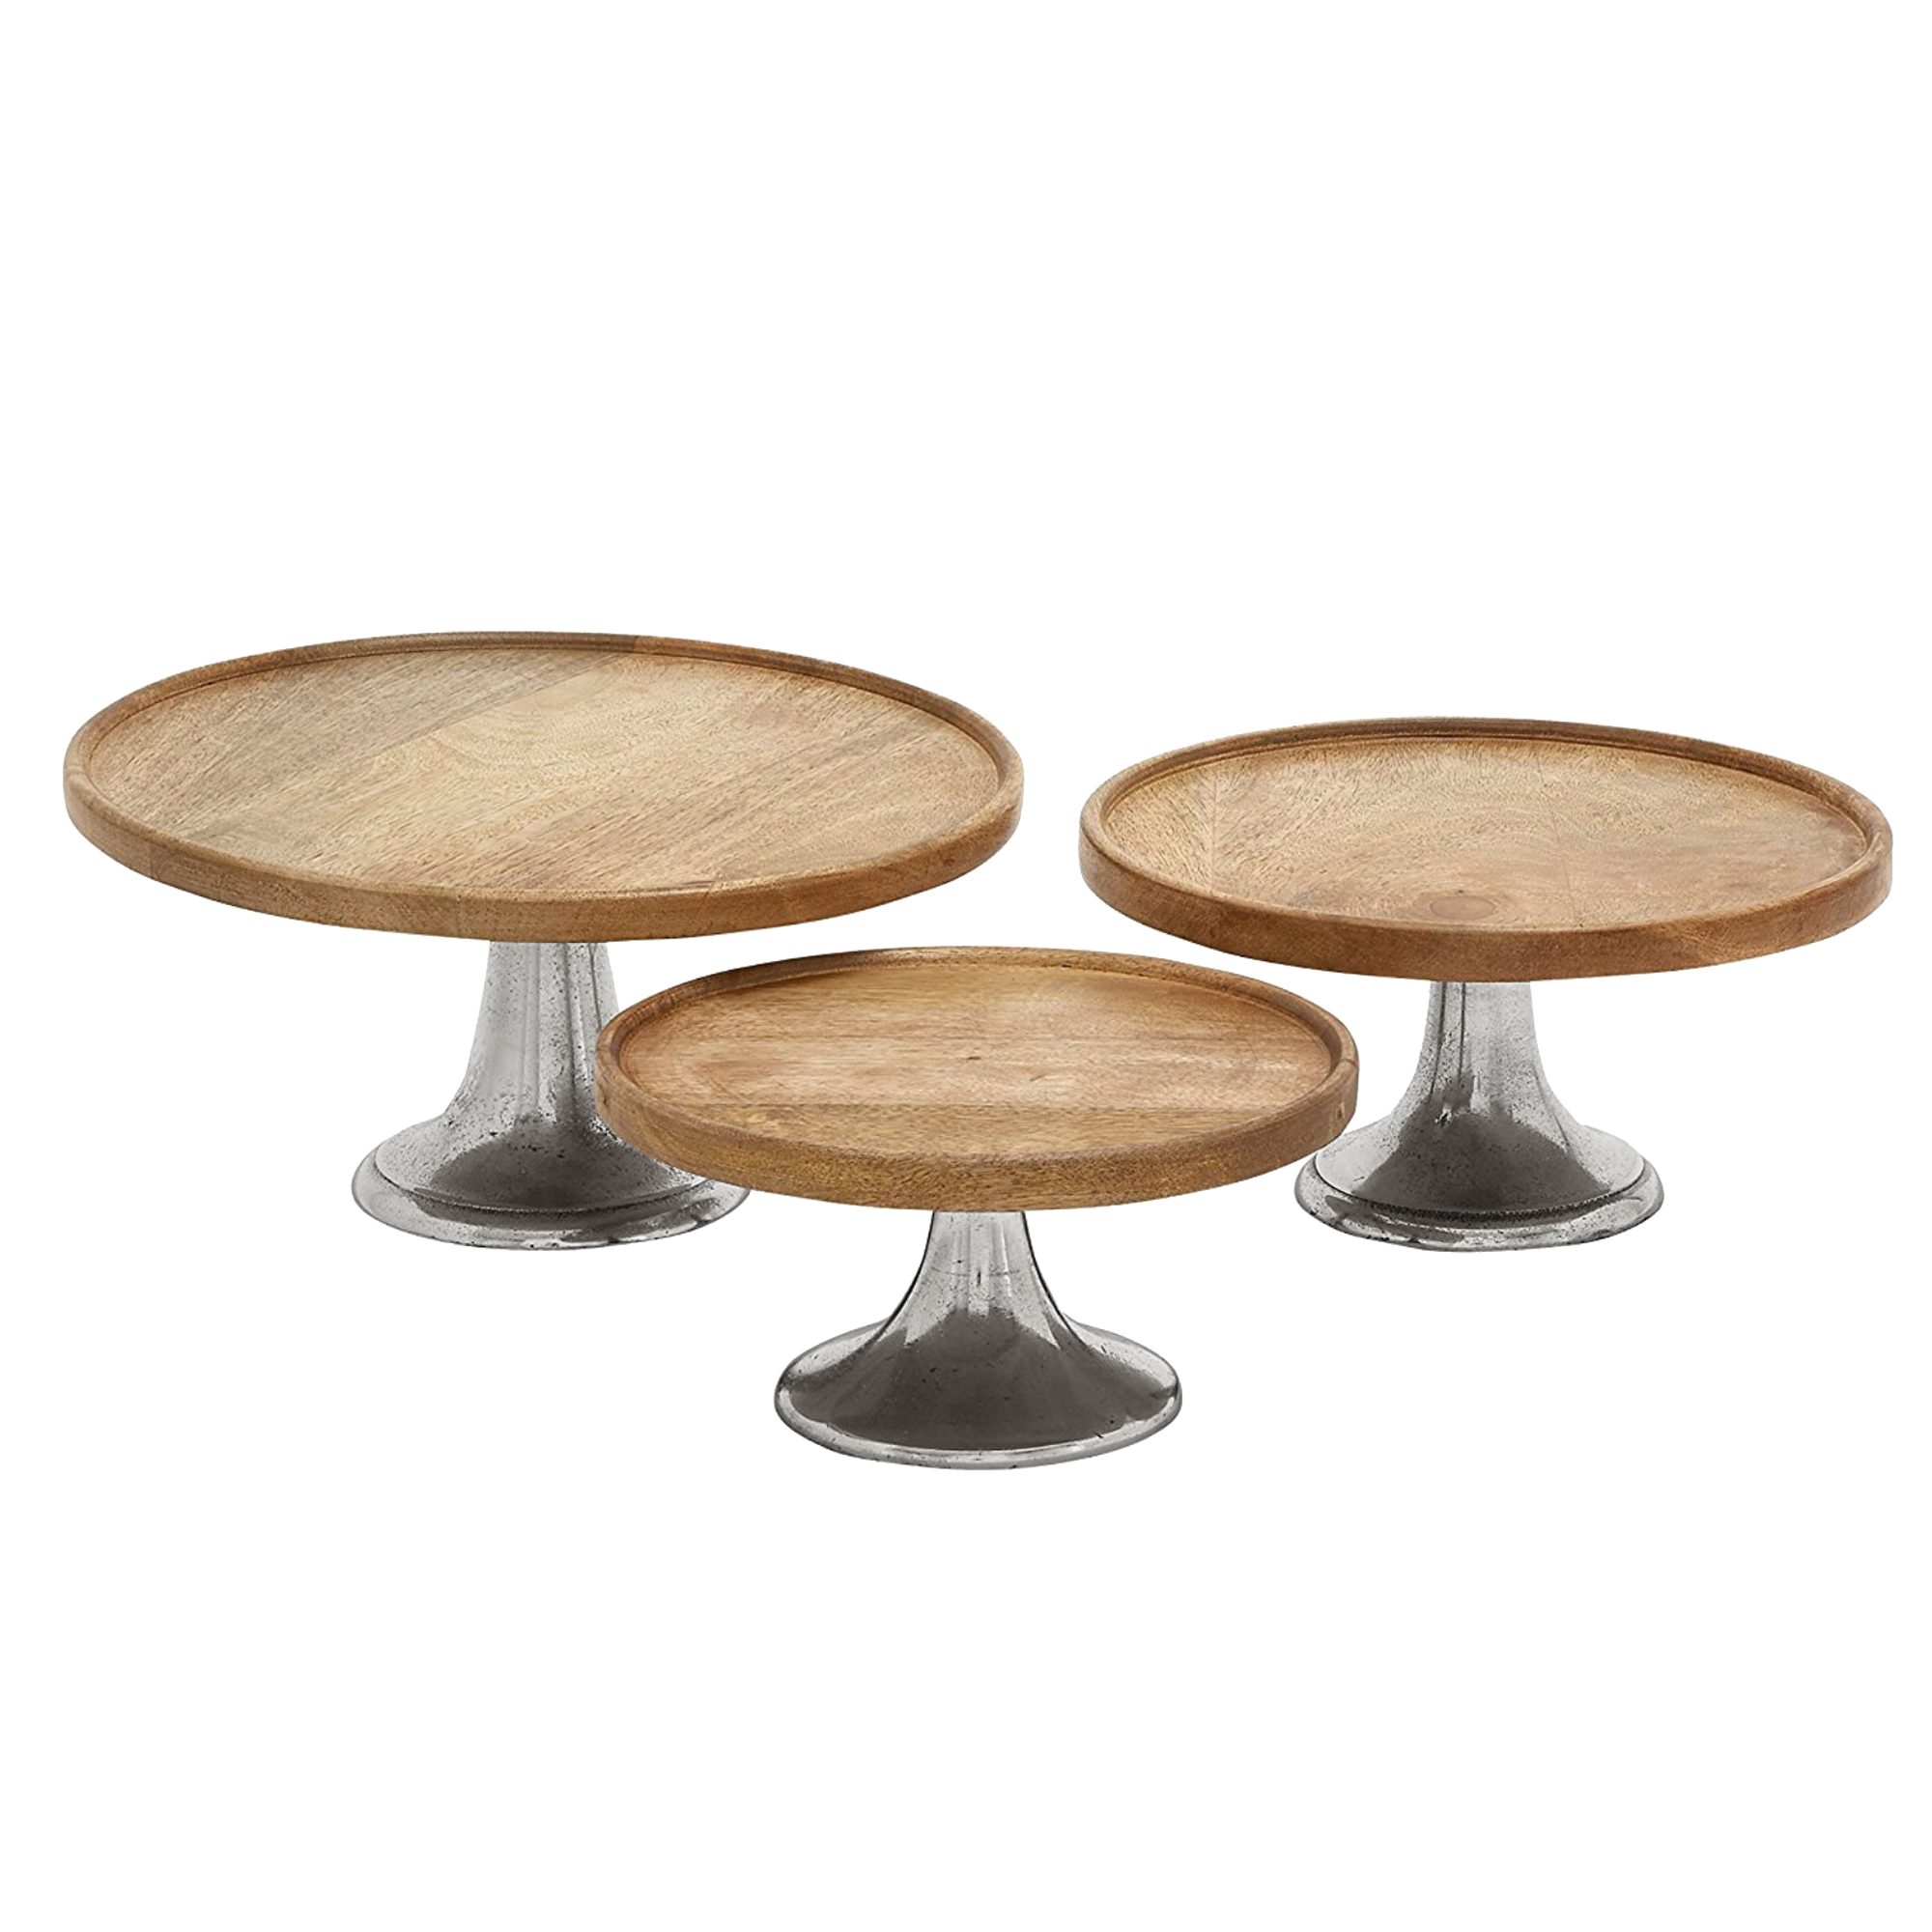 Round Wooden Cake Plate With Metal Base, Set Of Three, Brown And Silver